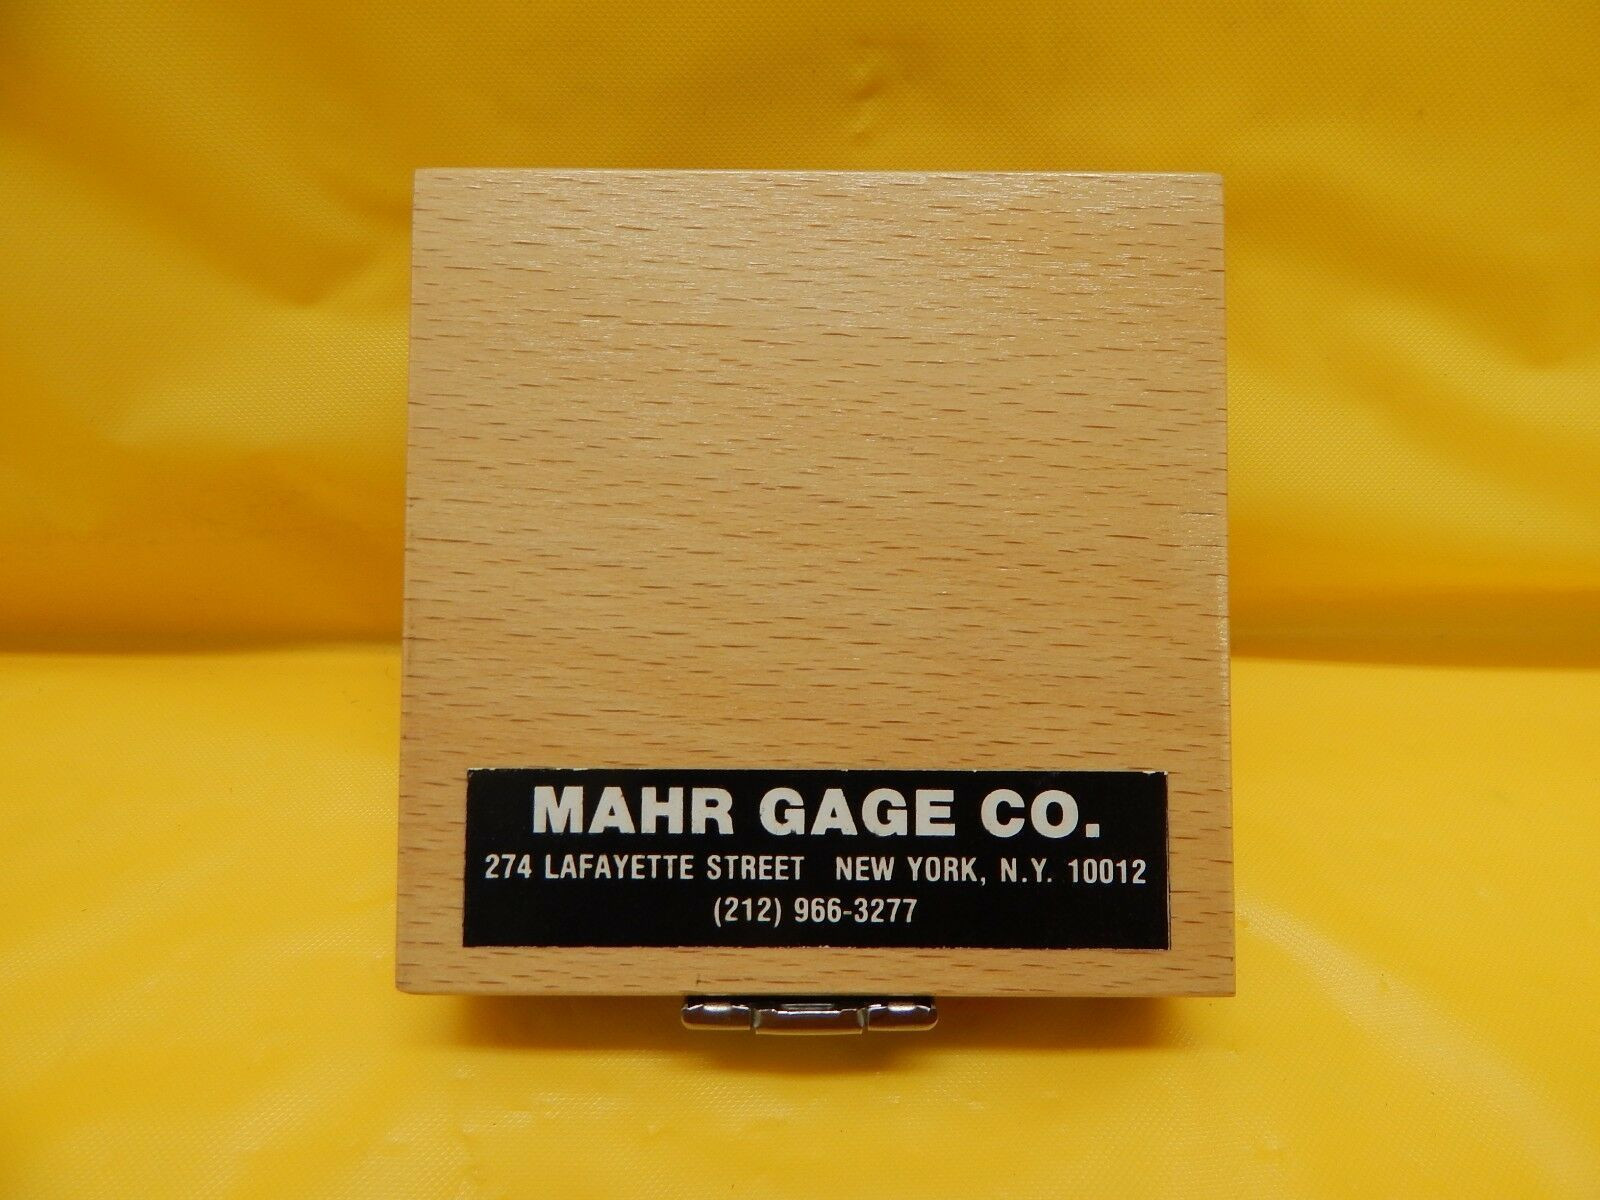 Mahr Perthen 6820101 Metrology Calibration Standard Gage PEN-10-1 Used Working